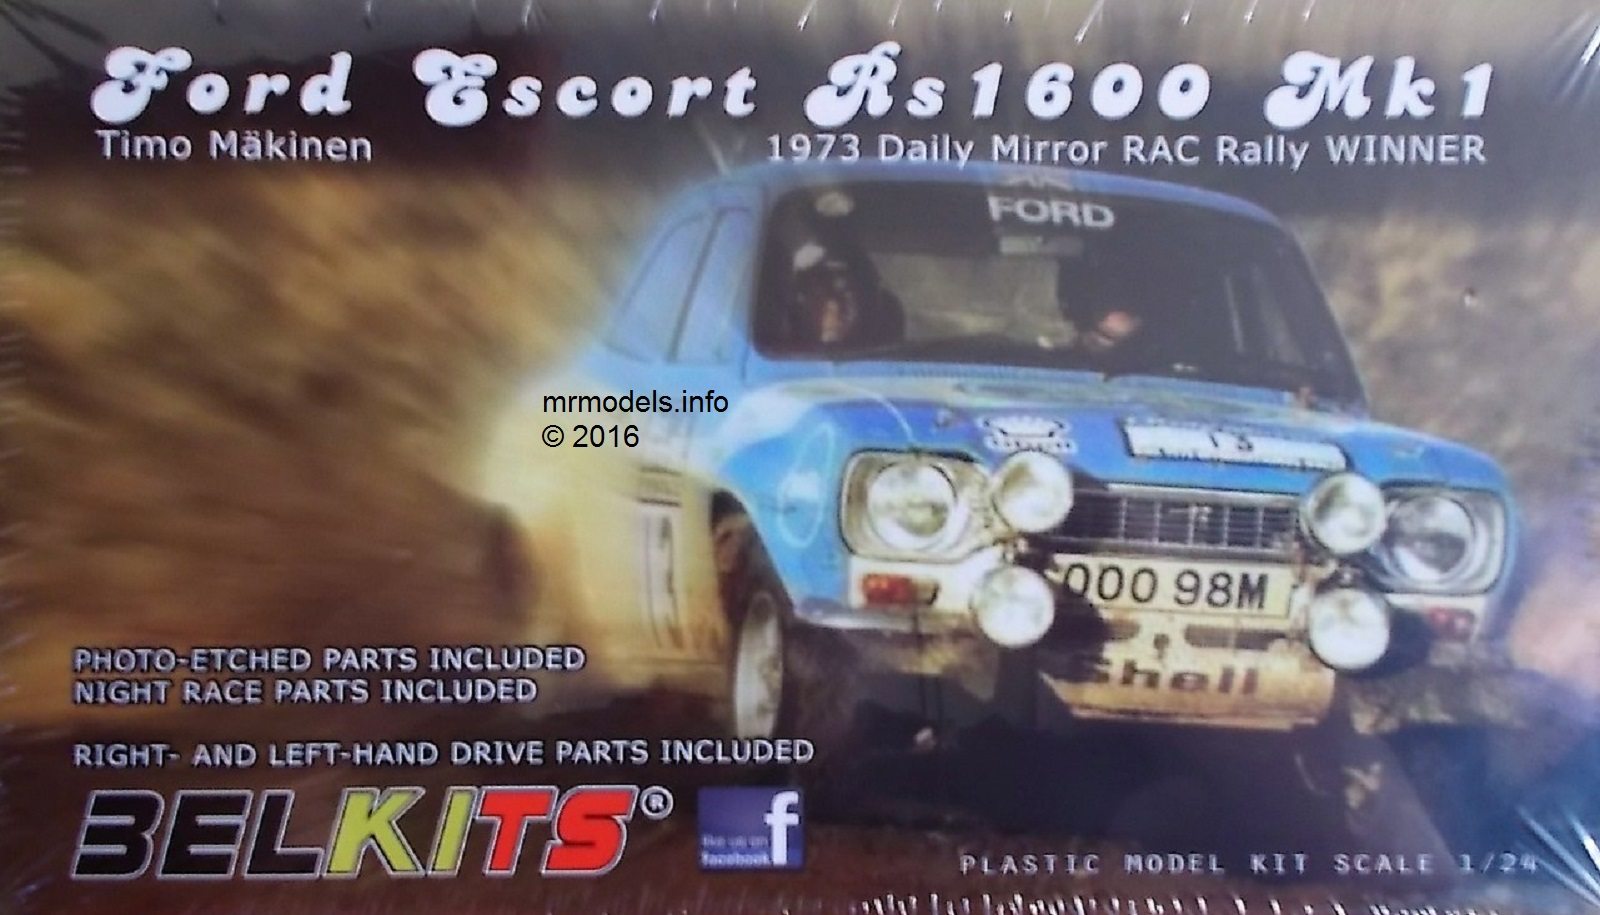 Belkits Ford Escort Timo Makinen